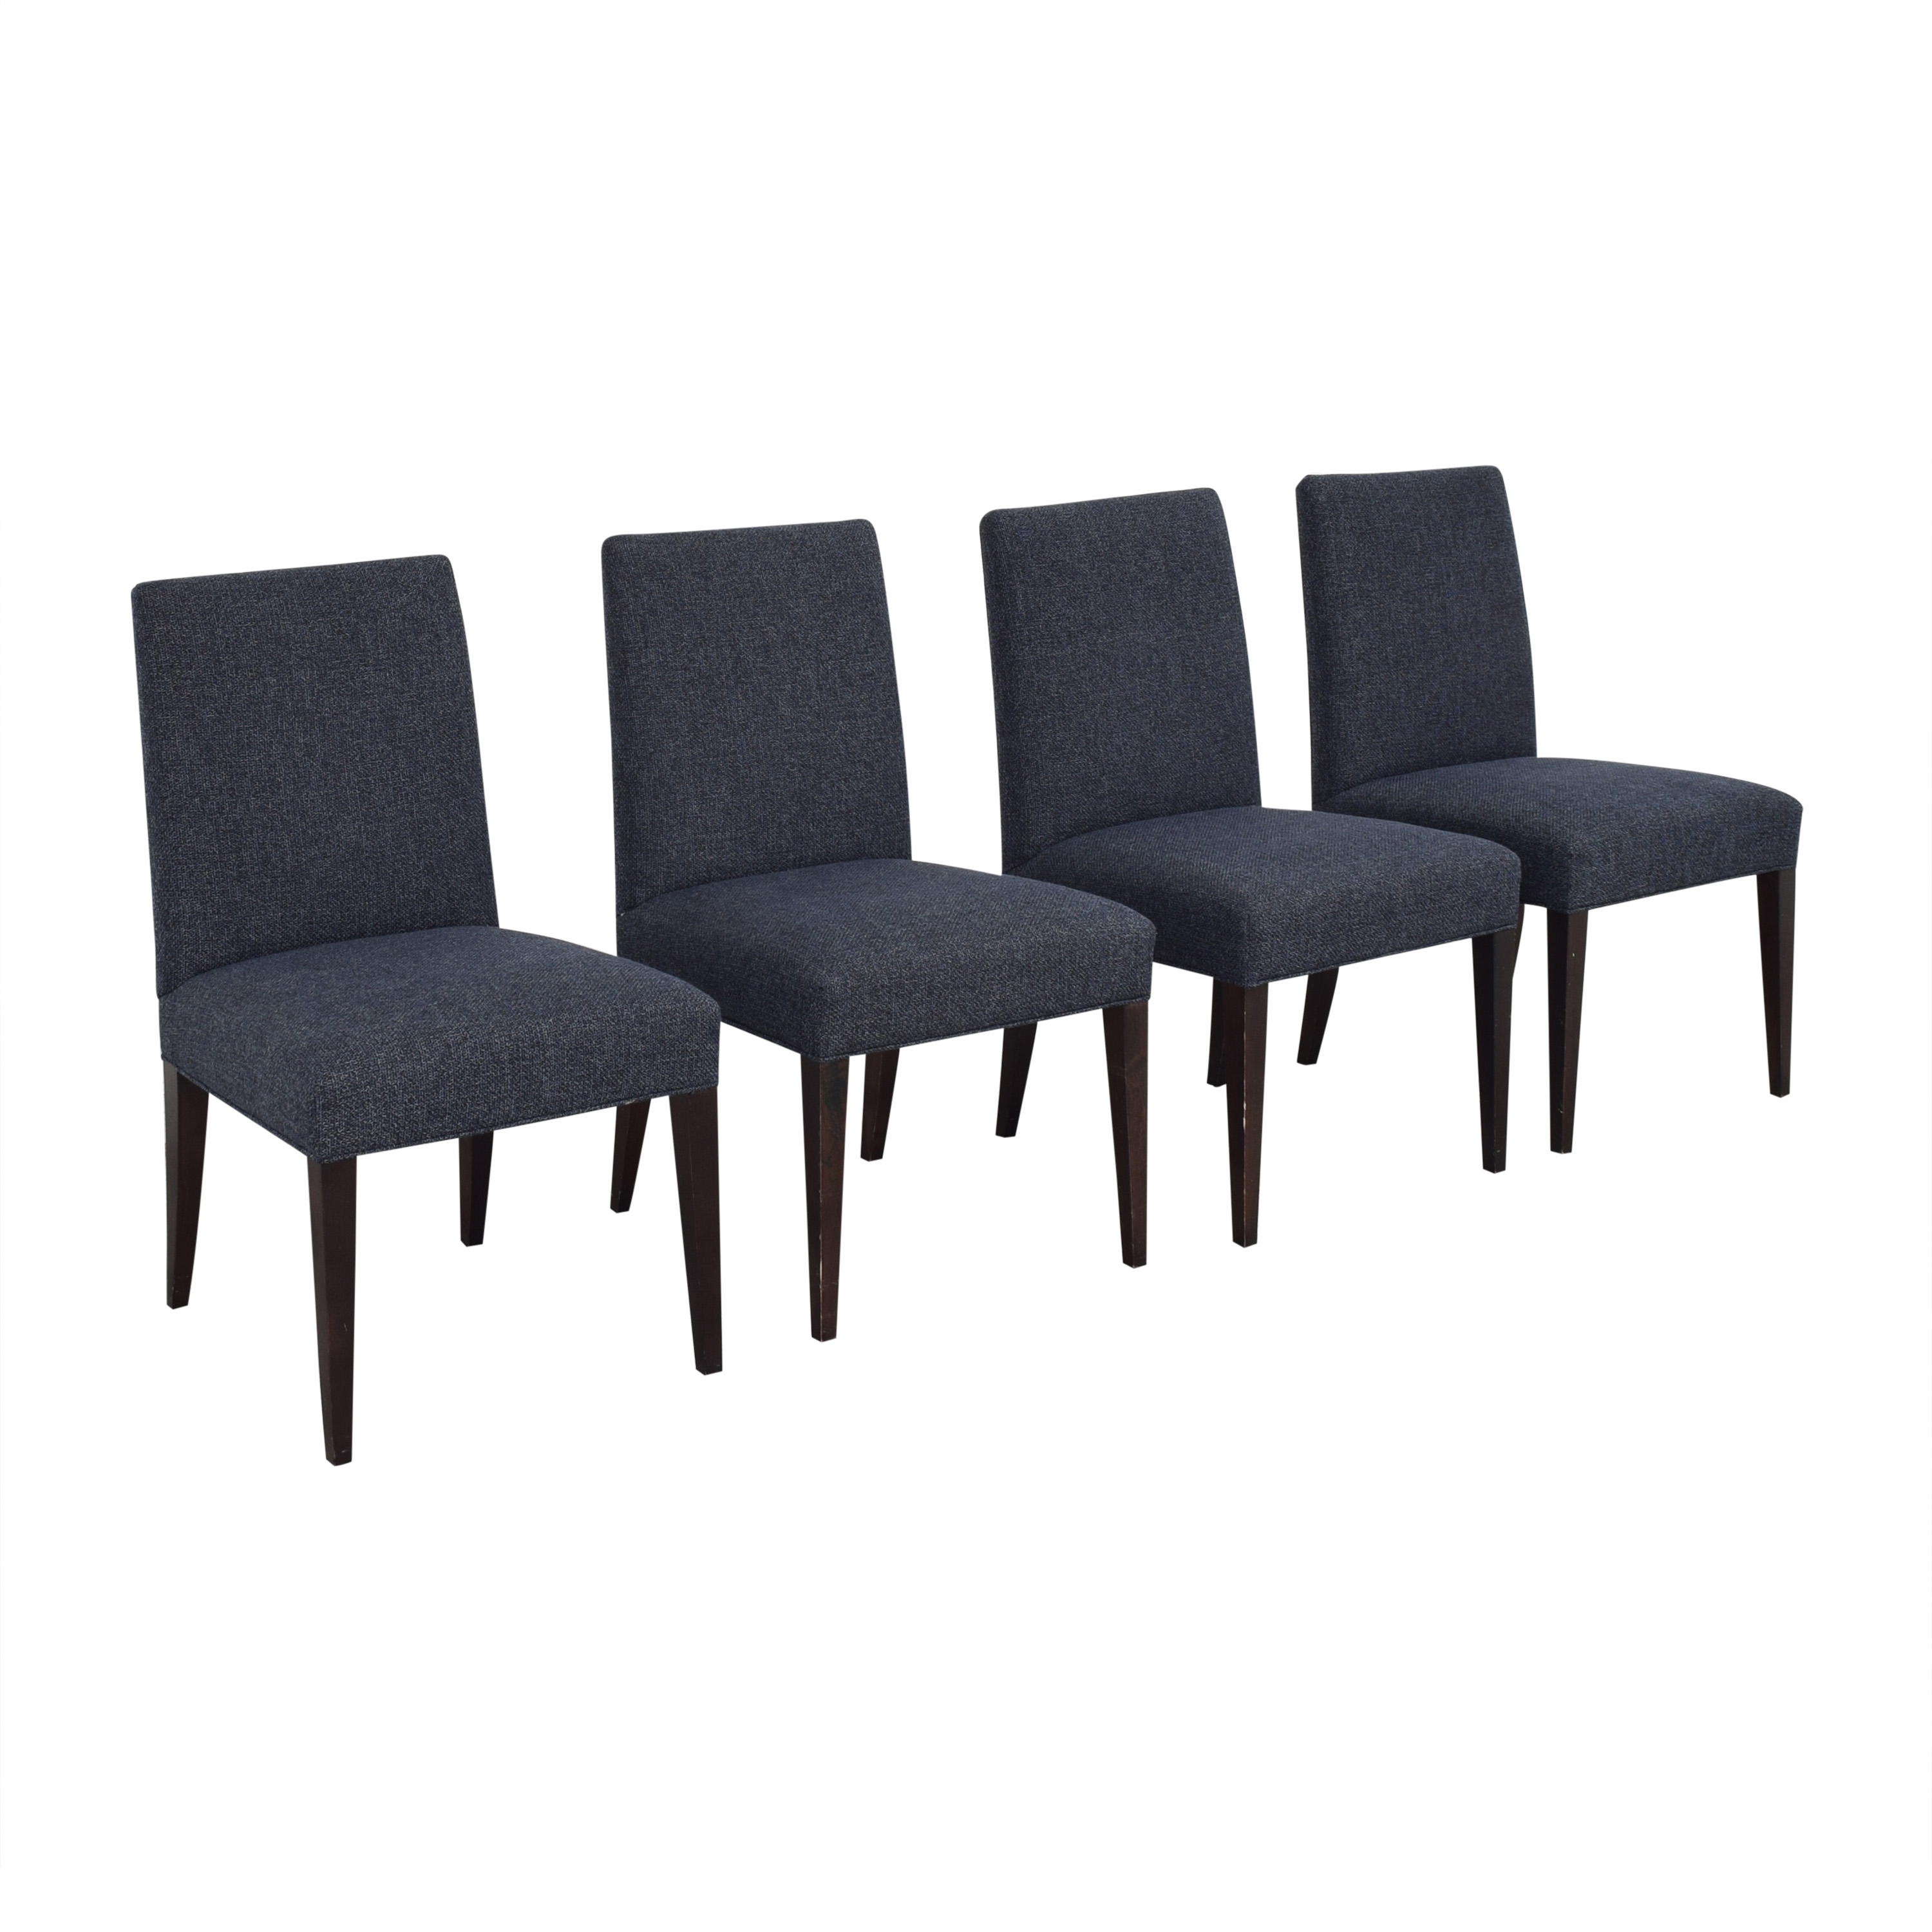 Crate & Barrel Miles Upholstered Dining Chairs / Chairs